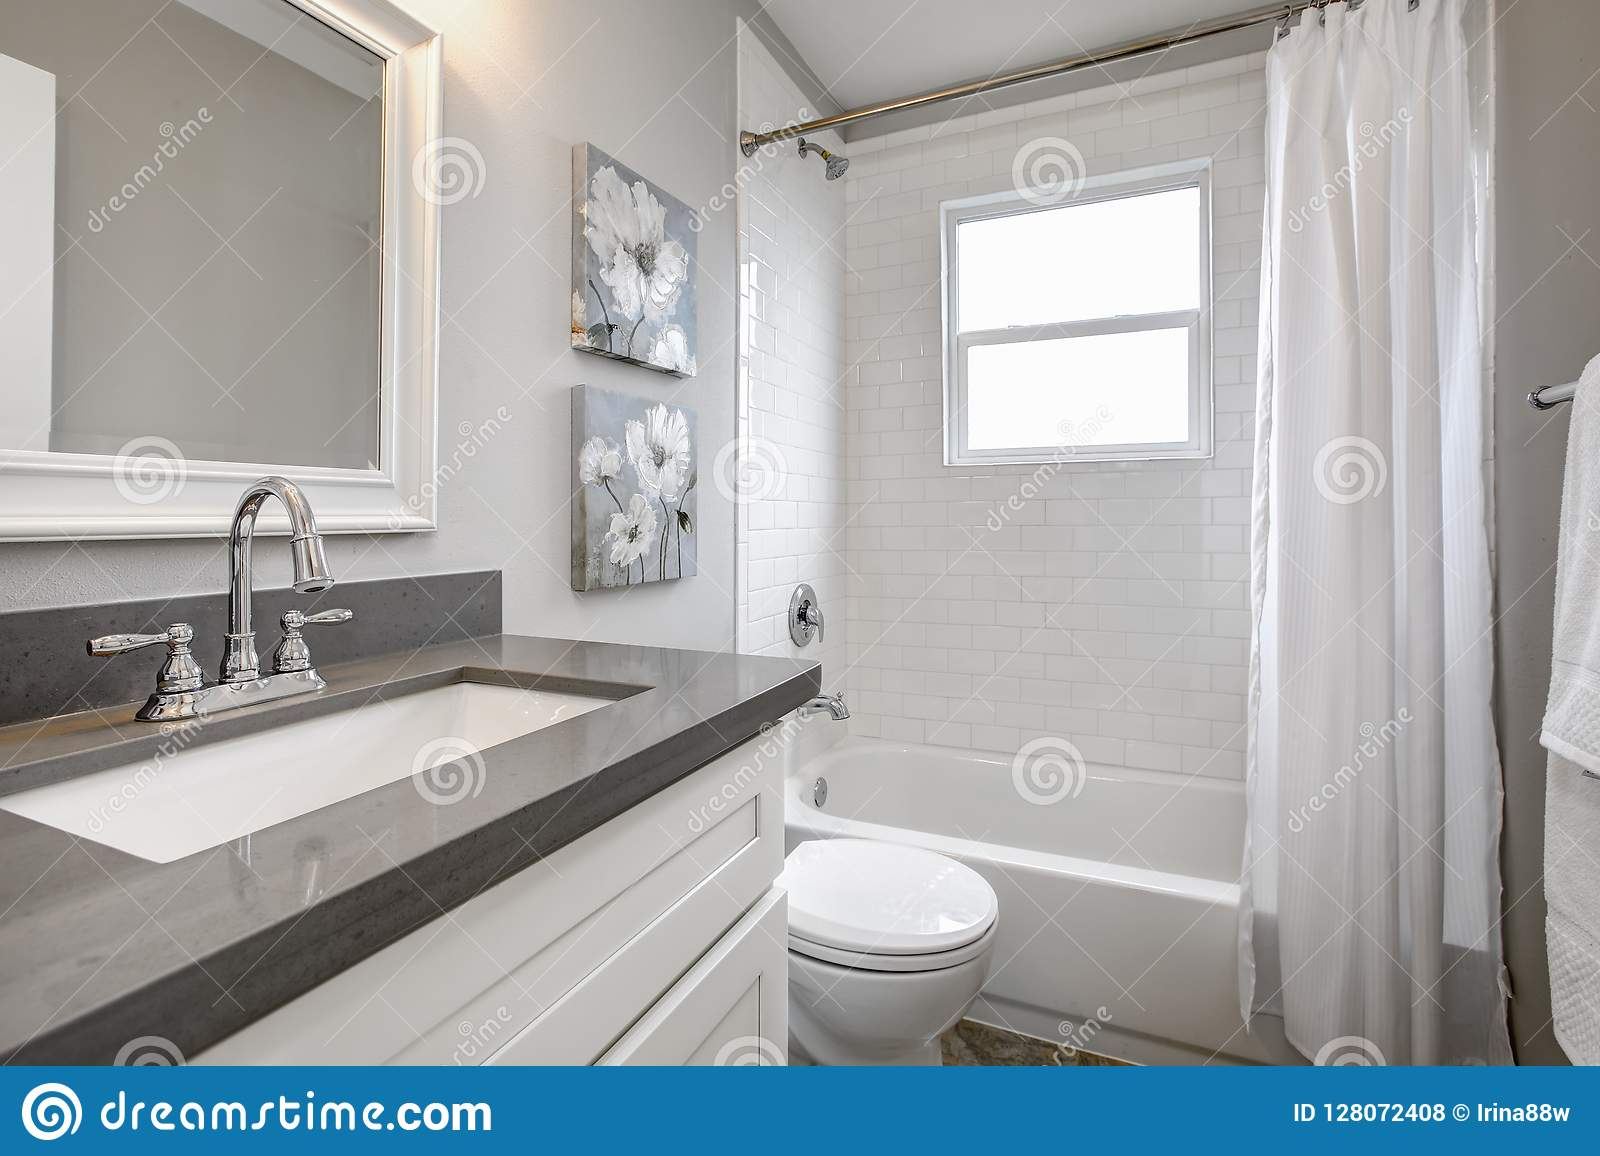 Modern Bathroom Interior With White Vanity Topped With Gray Countertop Stock Photo Image Of Project Glass 128072408